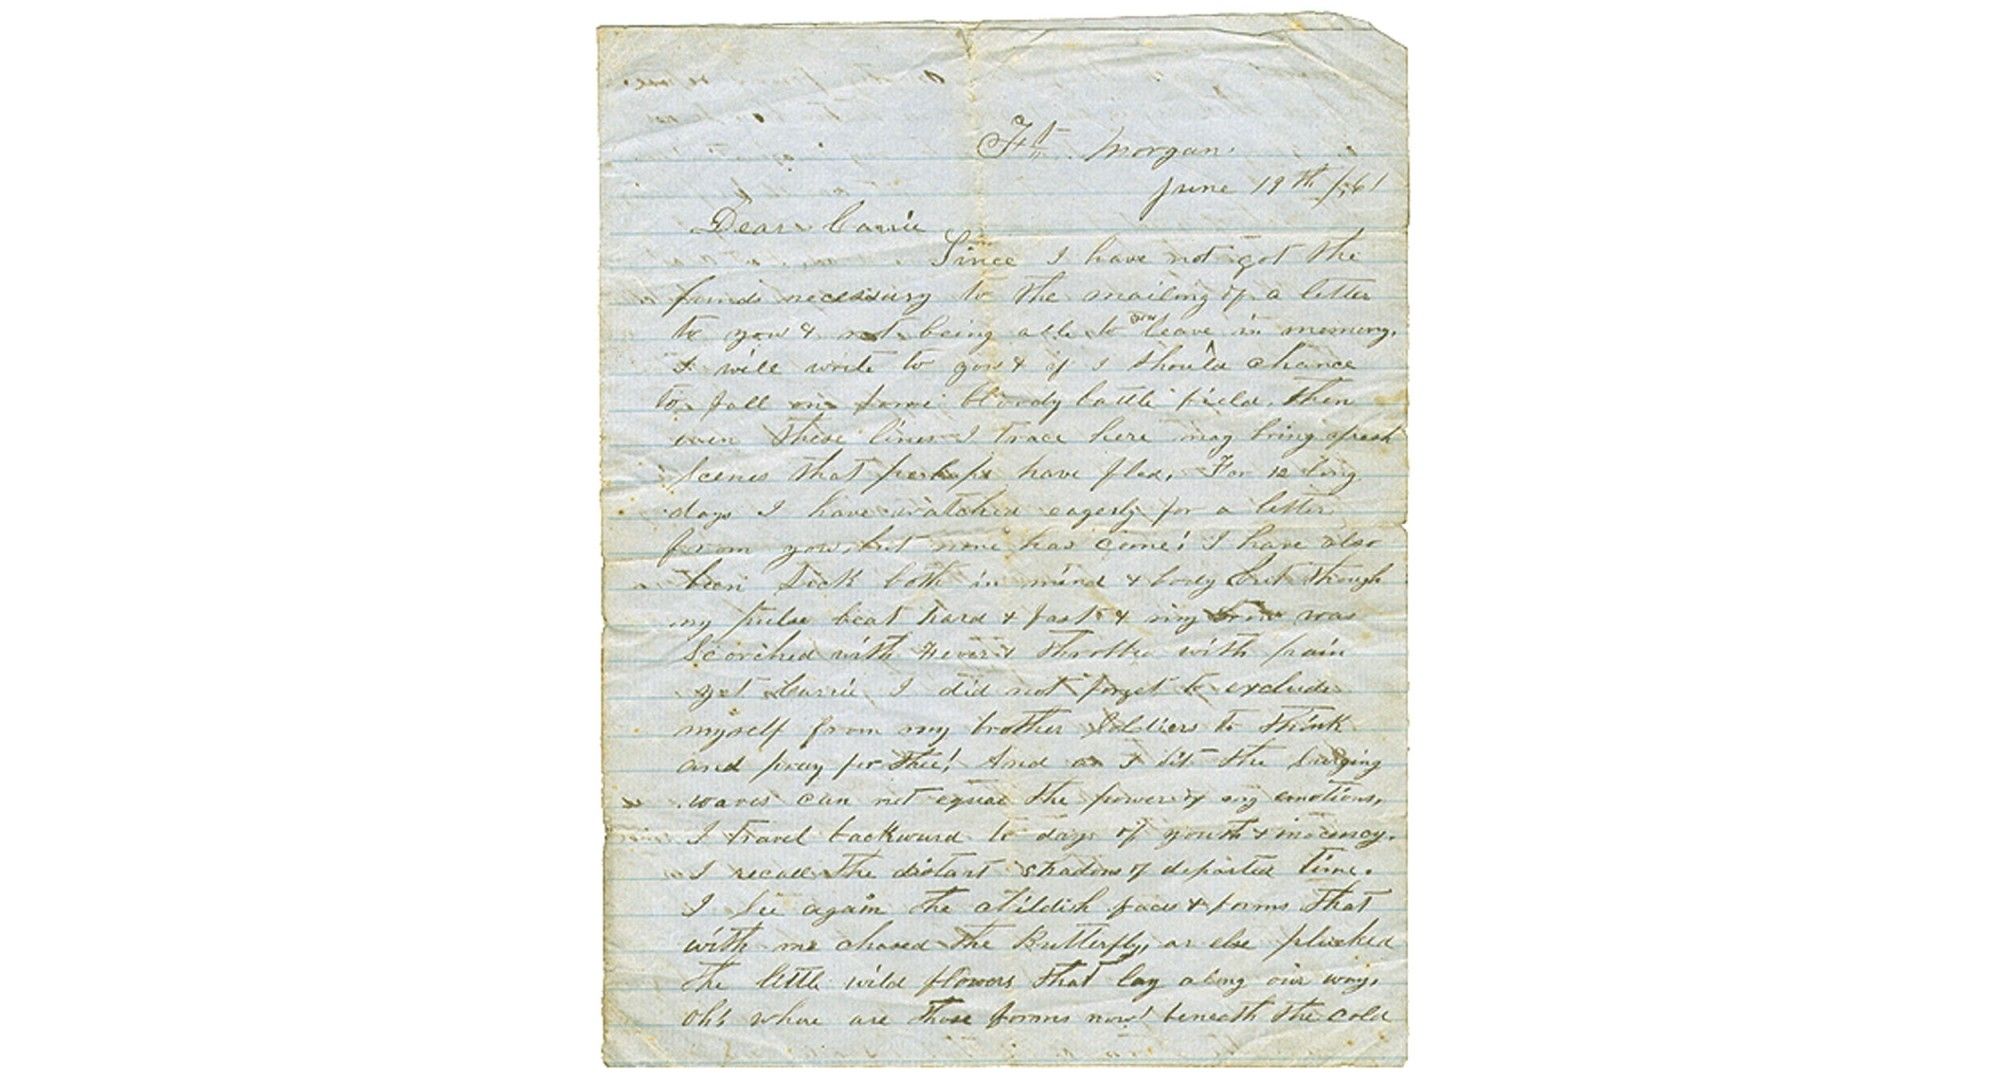 CONFEDERATE SOLDIER LETTER – HIRAM HOLT, 34TH ALABAMA